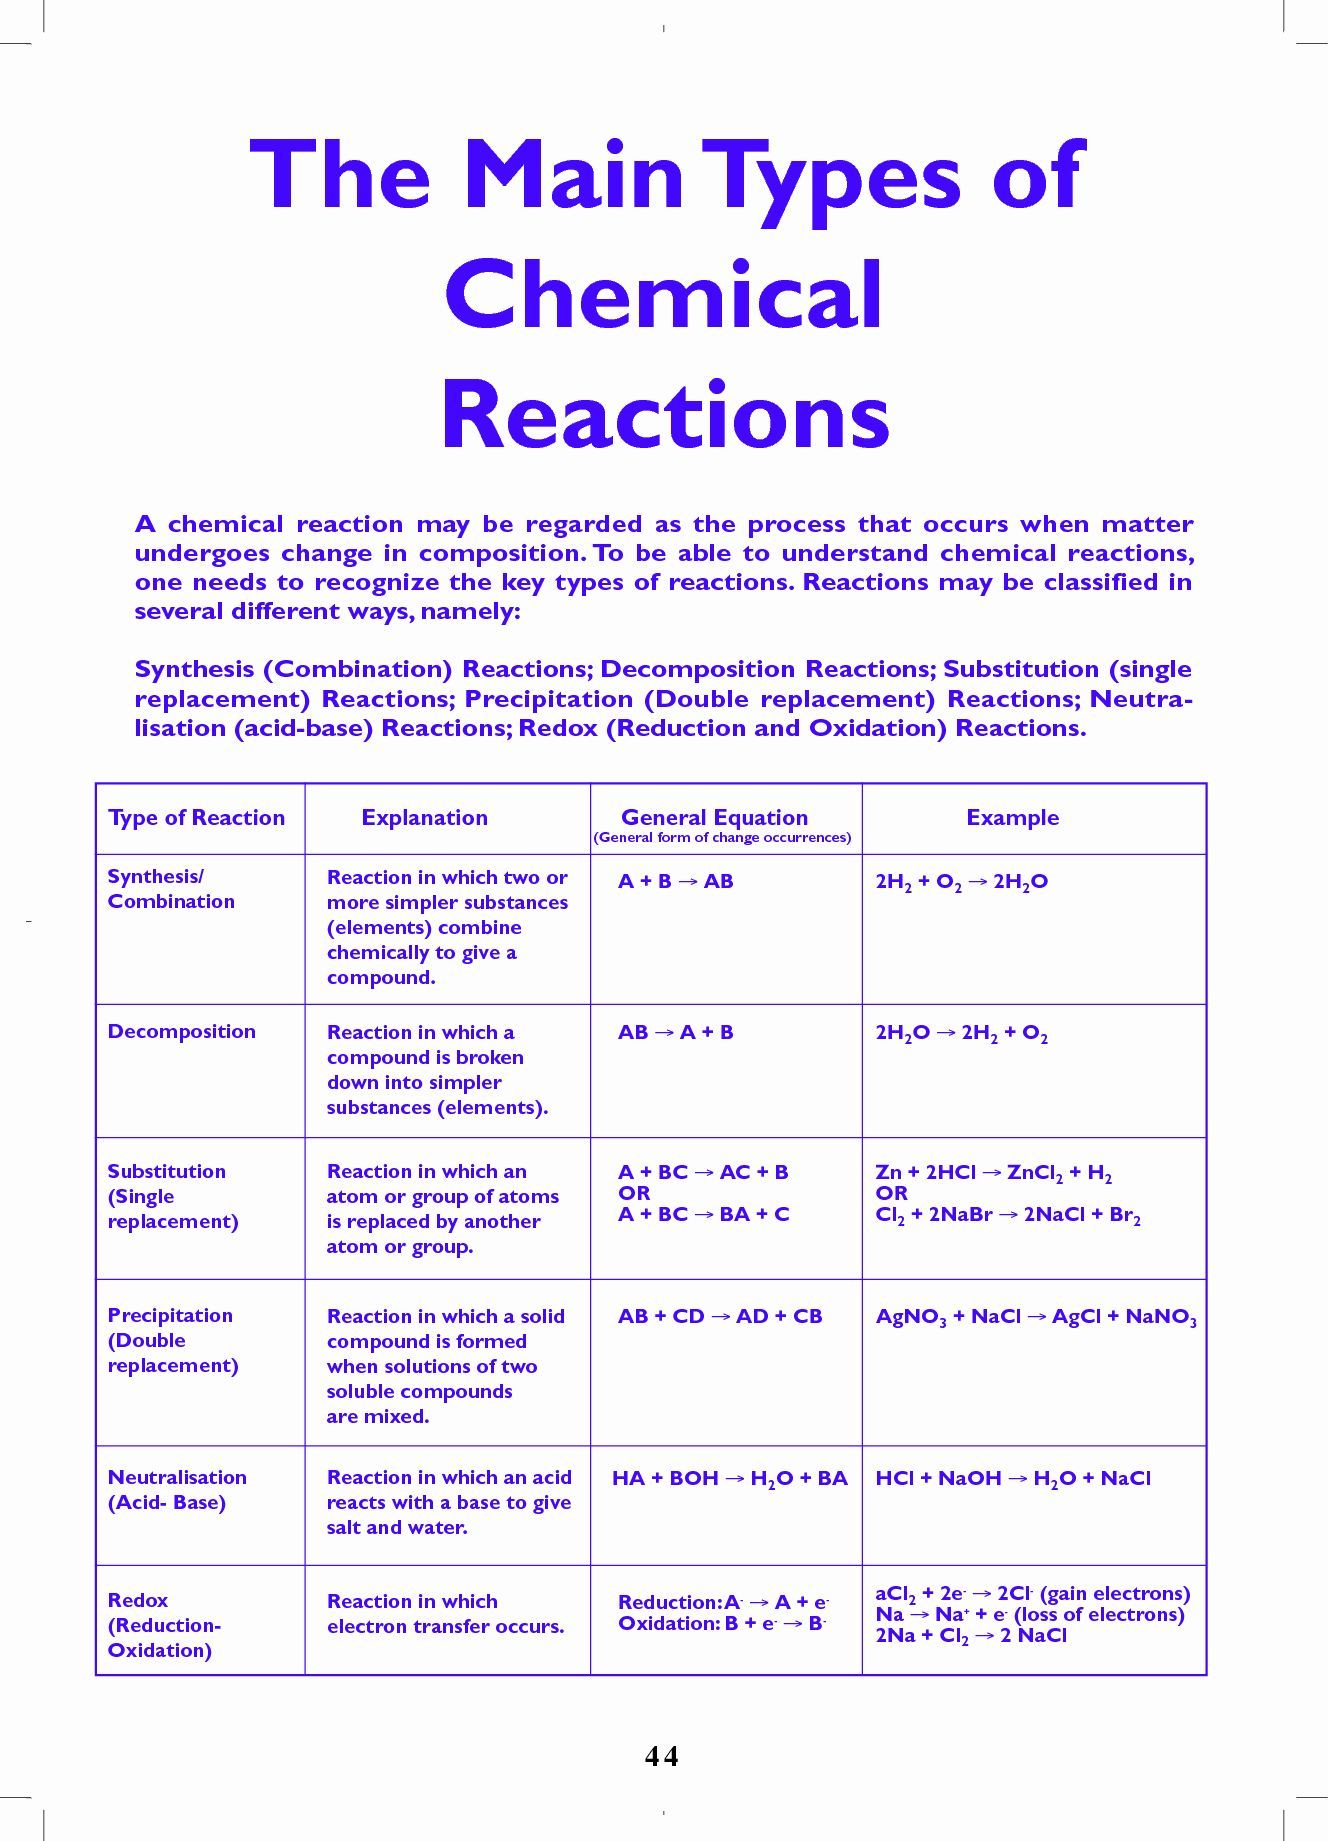 Chemical Reactions Types Worksheet Awesome Types Of Chemical Reactions In 2020 Chemistry Lessons Teaching Chemistry Science Chemistry